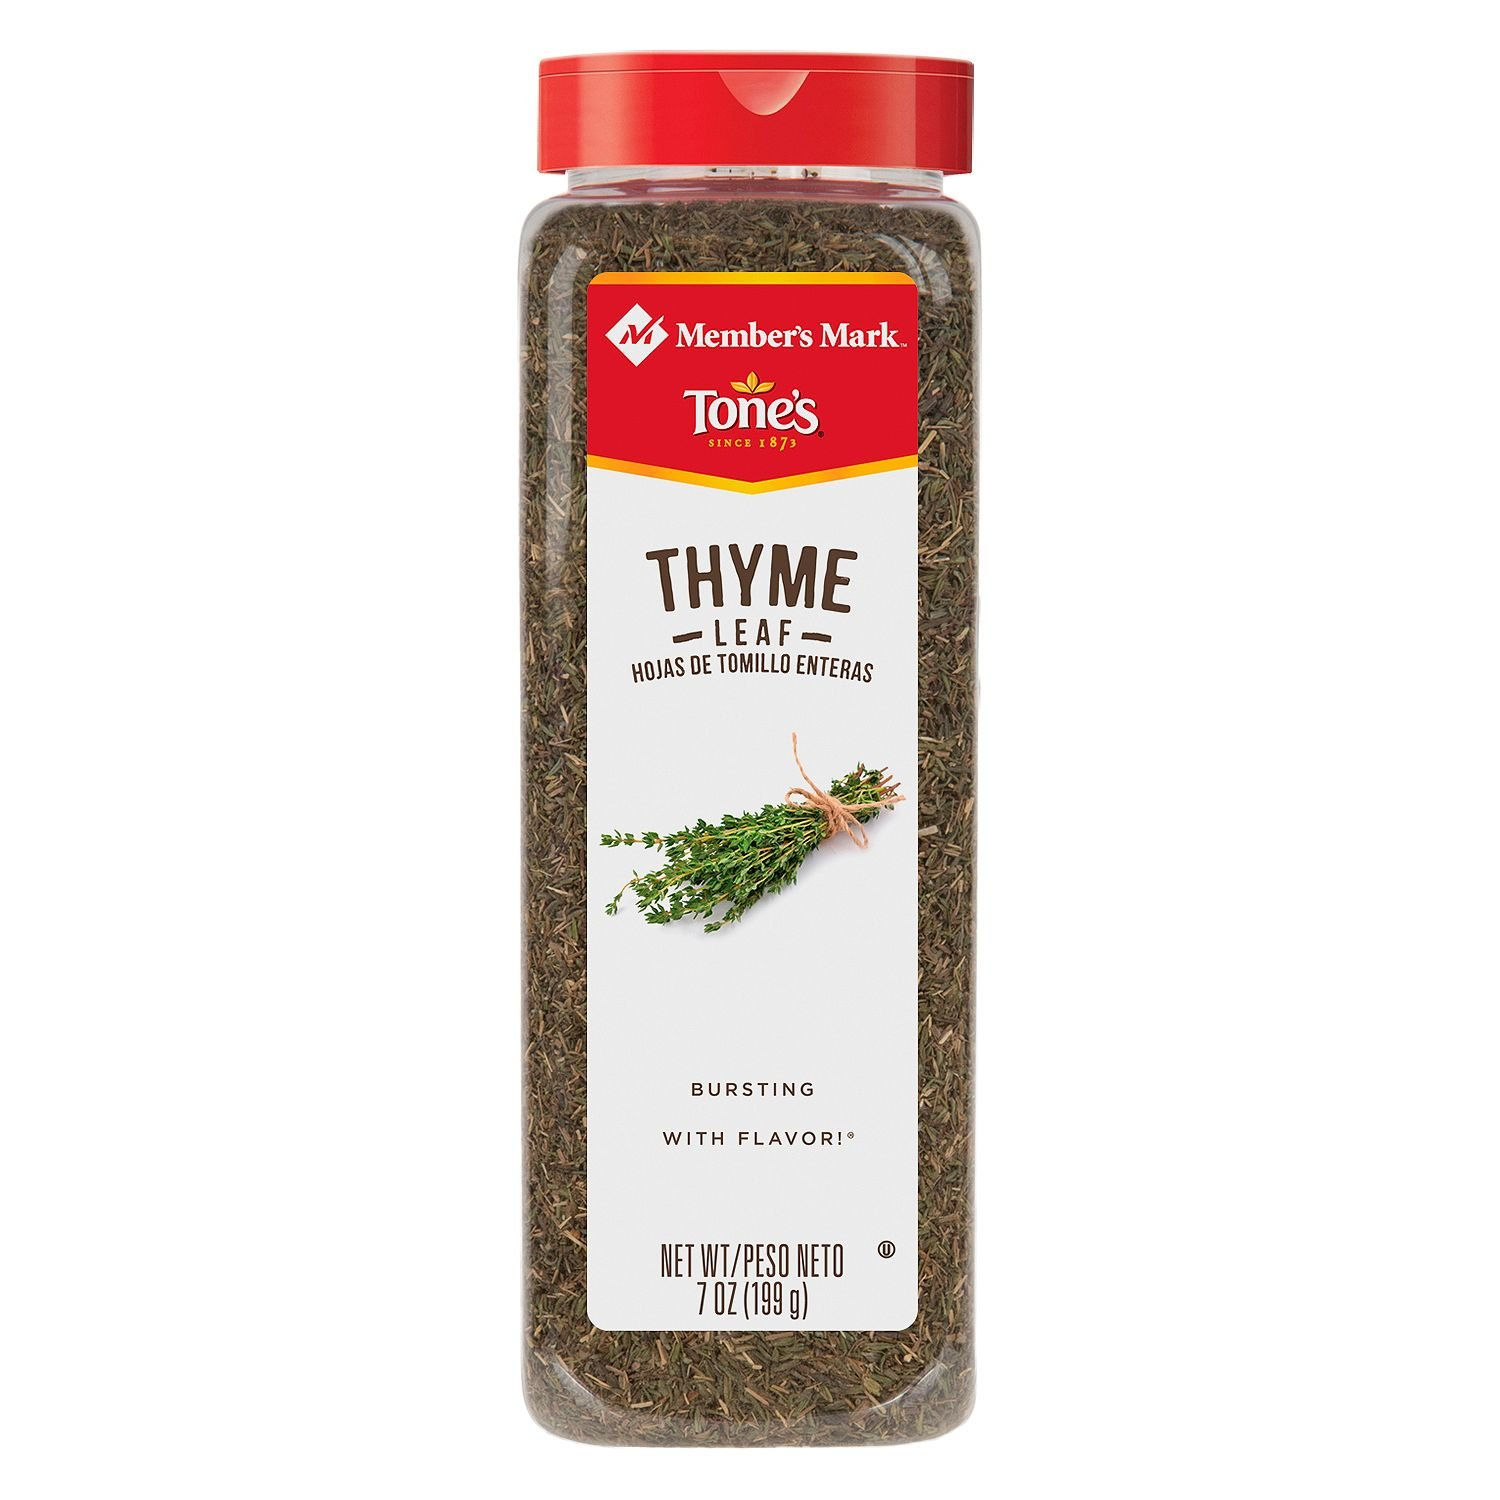 Member's Price reduction Mark Thyme Leaves by Some reservation Tone's A1 pack 4 oz. 7 of